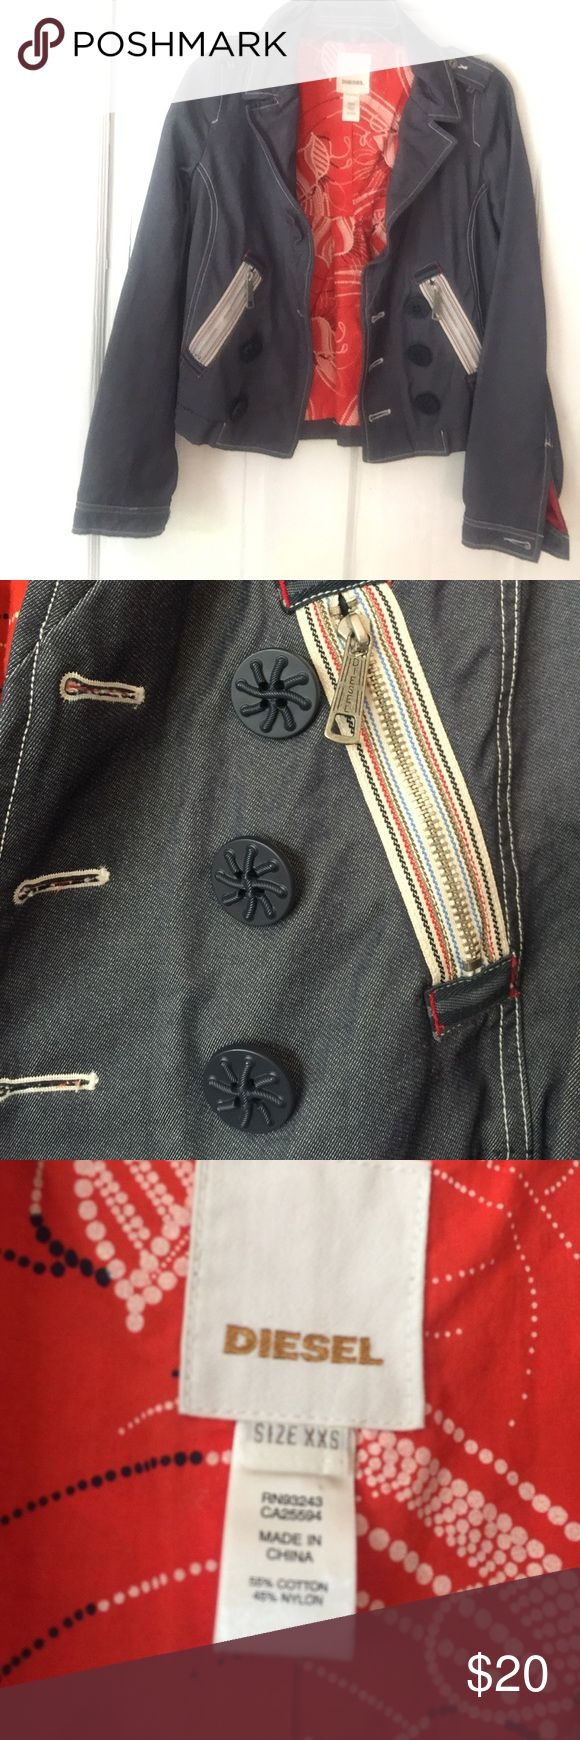 Diesel, denim looking heavy cotton jacket Diesel, denim looking jacket, one button is missing in the front (when worn open it is not noticeable). Zippered (logo) front pockets. Beautiful lining. Unfortunately there is a stain on the back (see photo) I have some cool patches that would match this jacket I could sew over it. I was almost thinking about making it into a vest being the sleeves do not fit me correctly. If interested please ask about covering the stain. I will lower the price sold…